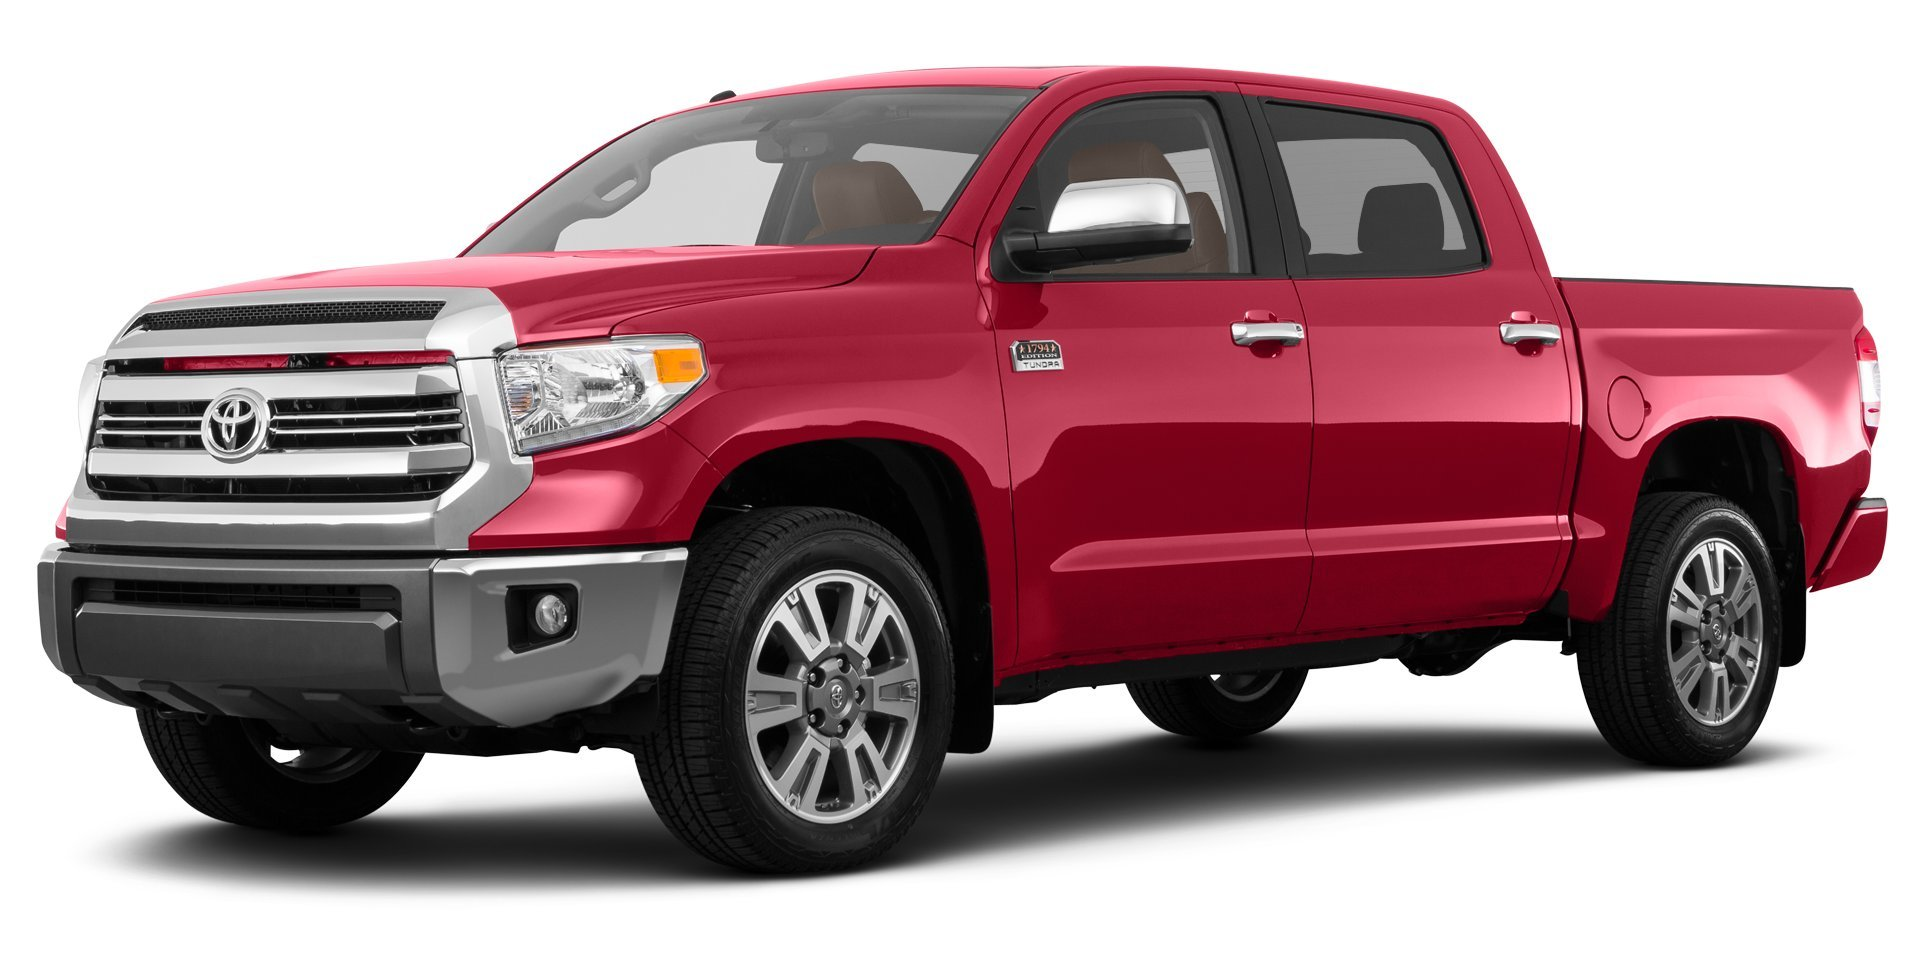 2017 toyota tundra reviews images and specs. Black Bedroom Furniture Sets. Home Design Ideas